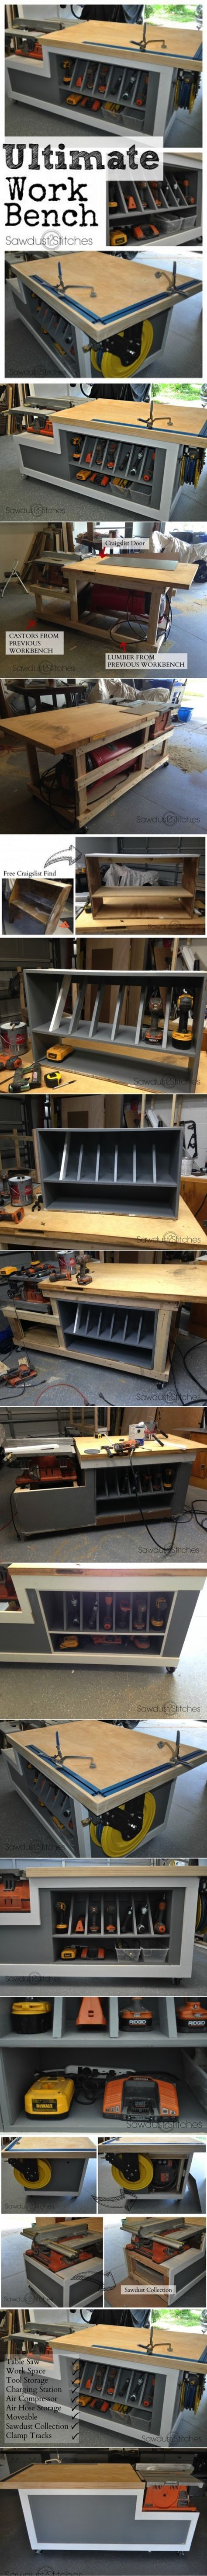 20 best Woodworking images on Pinterest